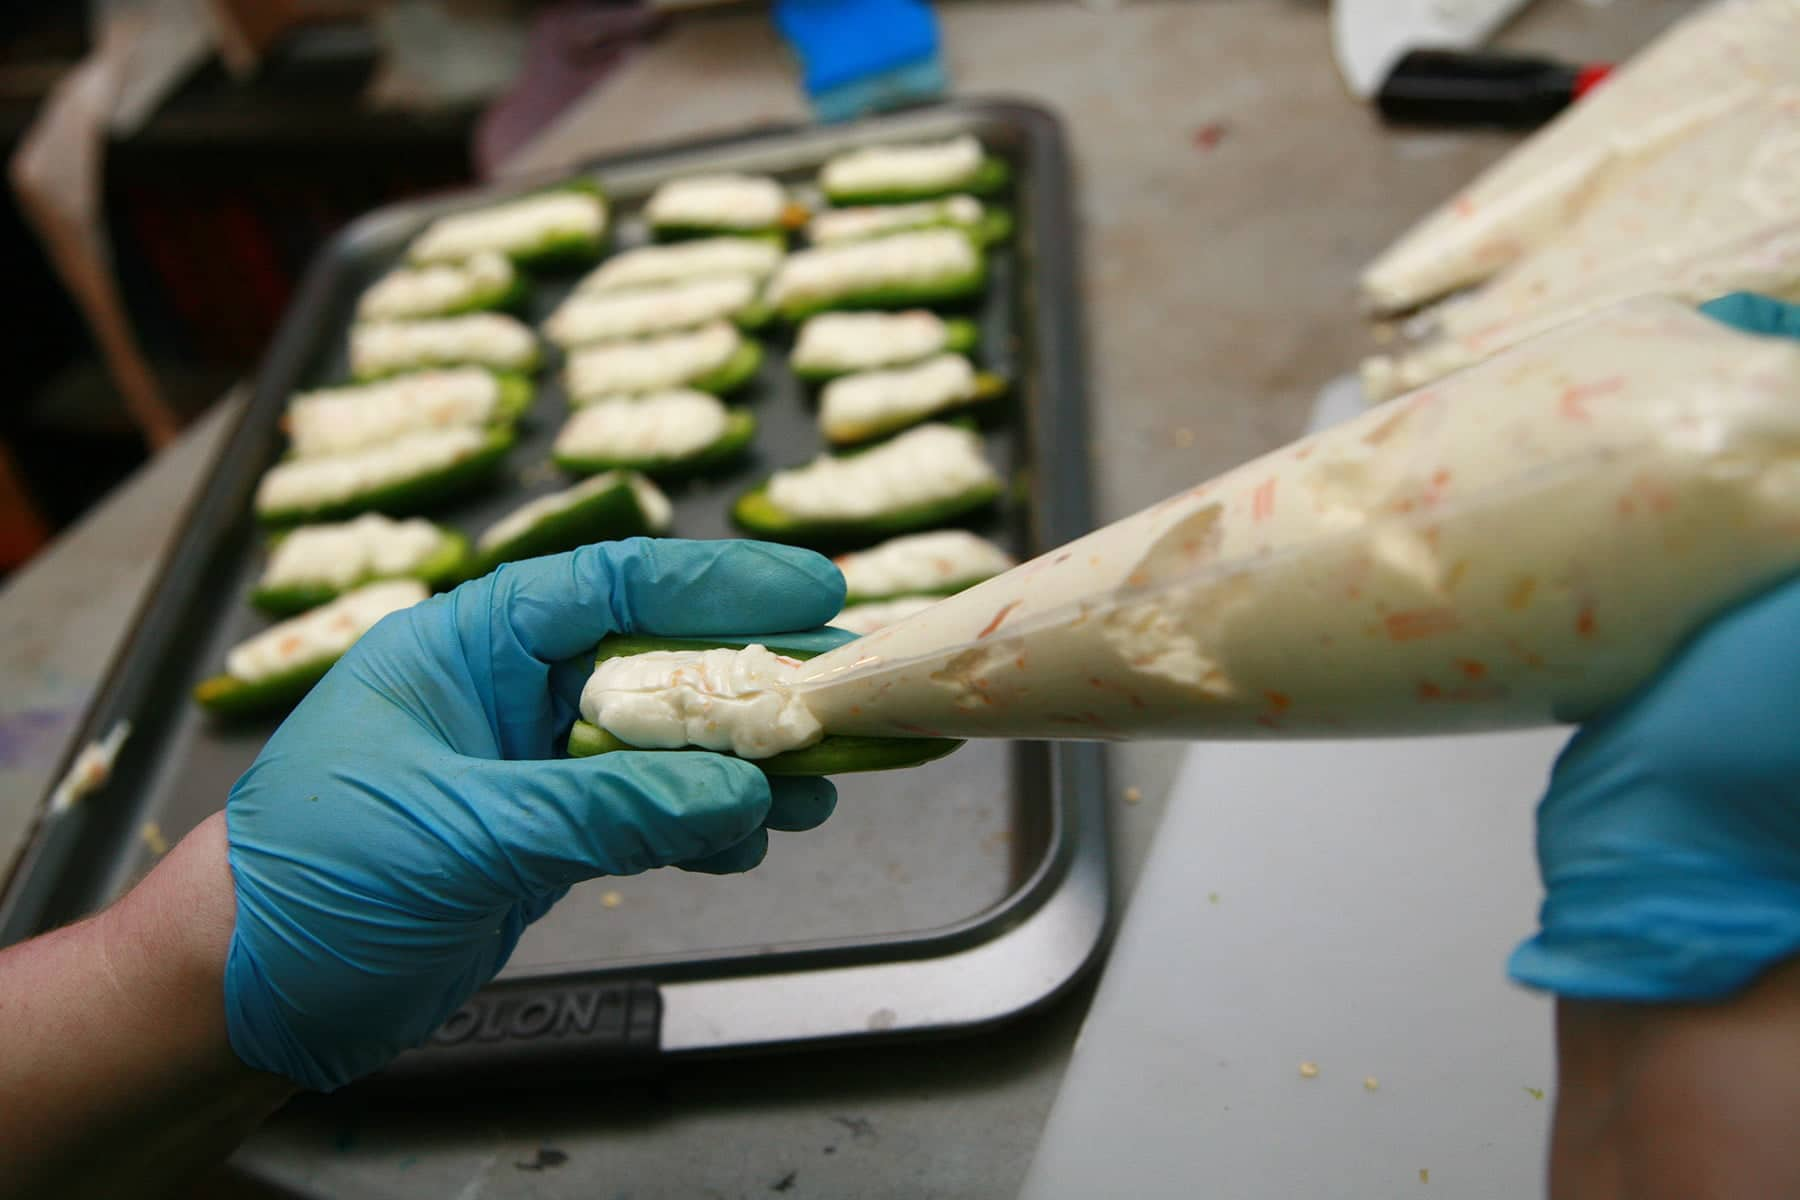 Gloved hands use a pastry bag to pipe cheese mixture into a halved jalapeno pepper.